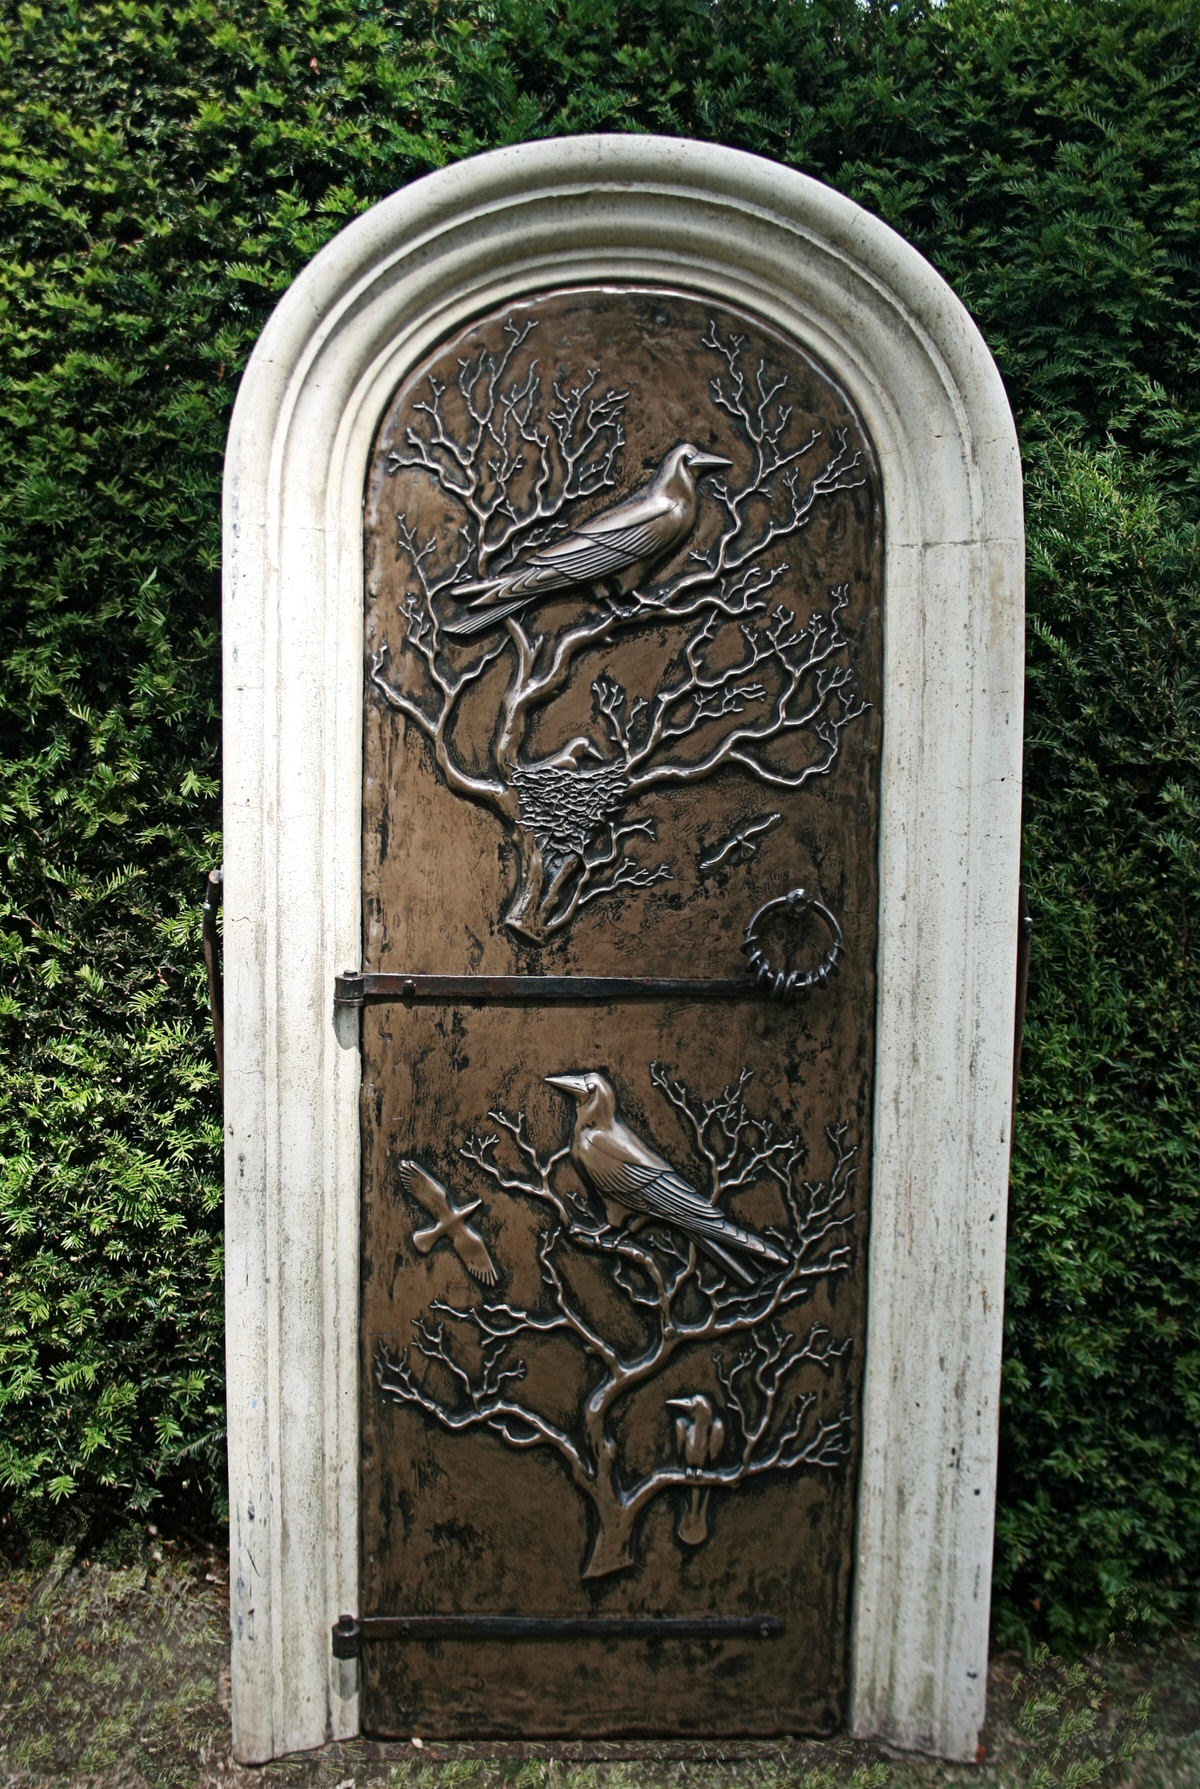 Secret Garden Door Roman Arch Walled Gared Garden Sculpture Garden Freize Bronze Garden Panel Enchanted Sculpture & Enchanted Garden Doors \u0026 DIY Blank Fairy Garden Pixie Door Tiny By ... Pezcame.Com